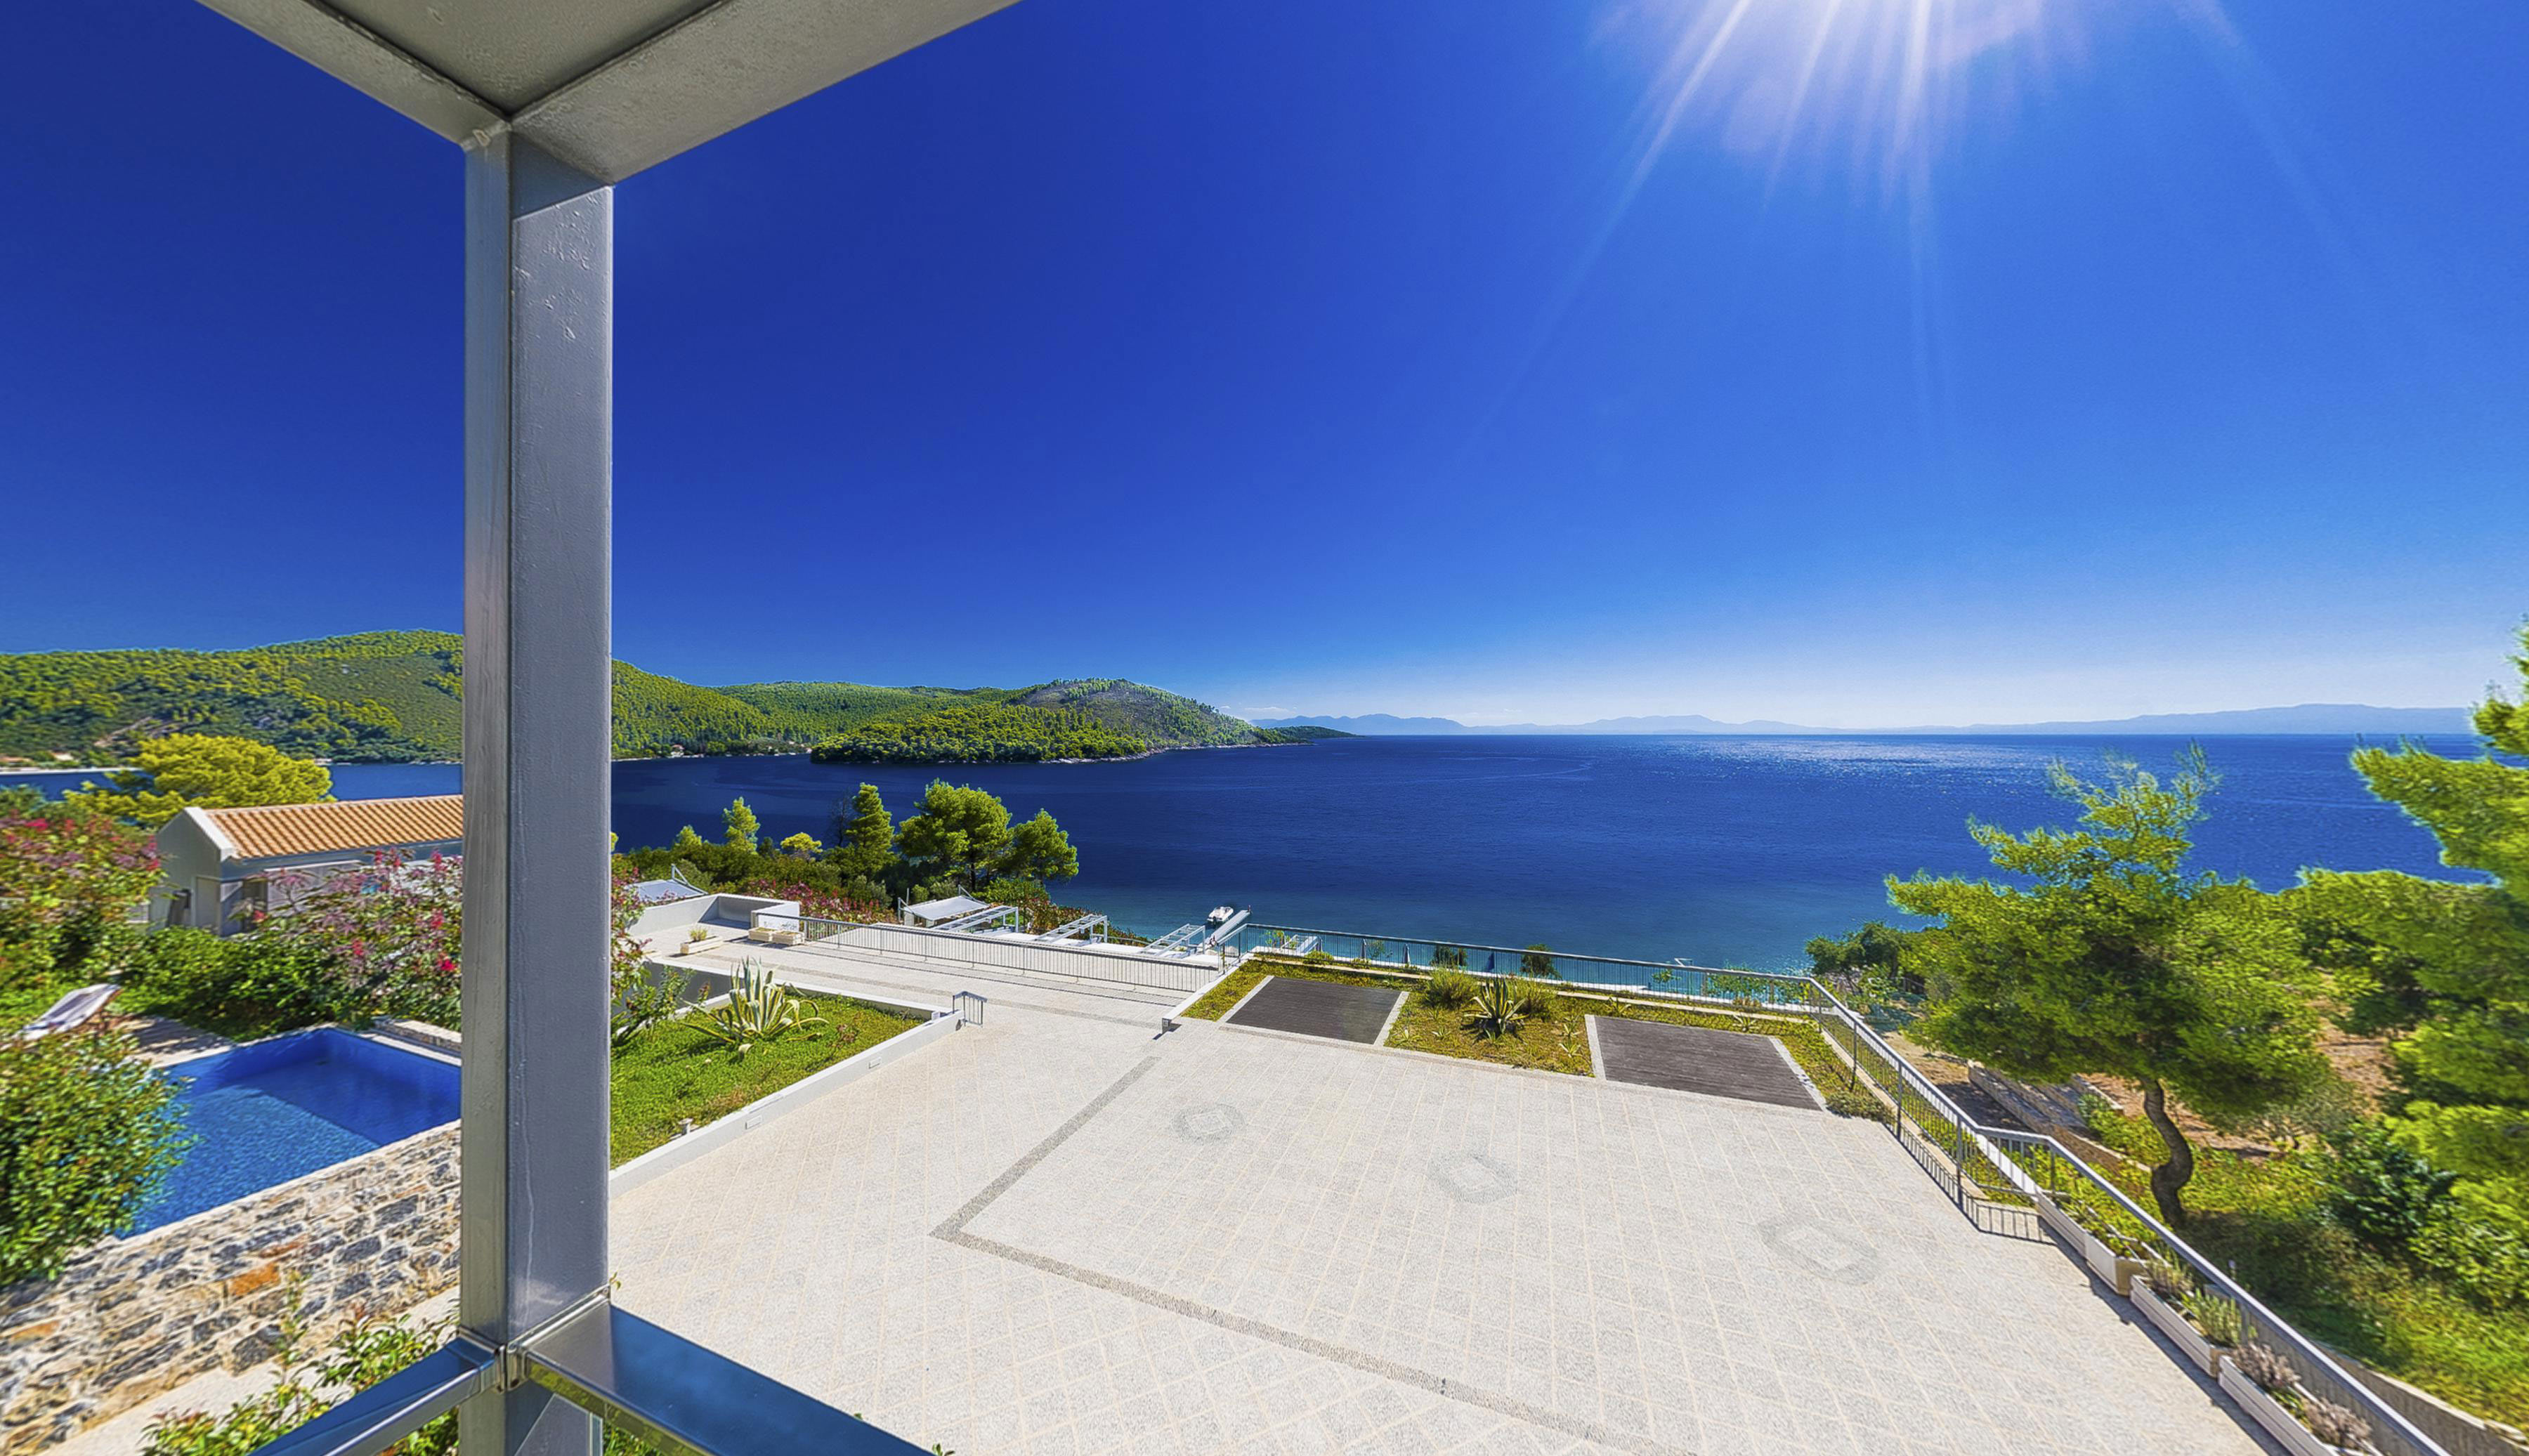 skopelos hotels adrina resort 2 beroom 2 level villa 608